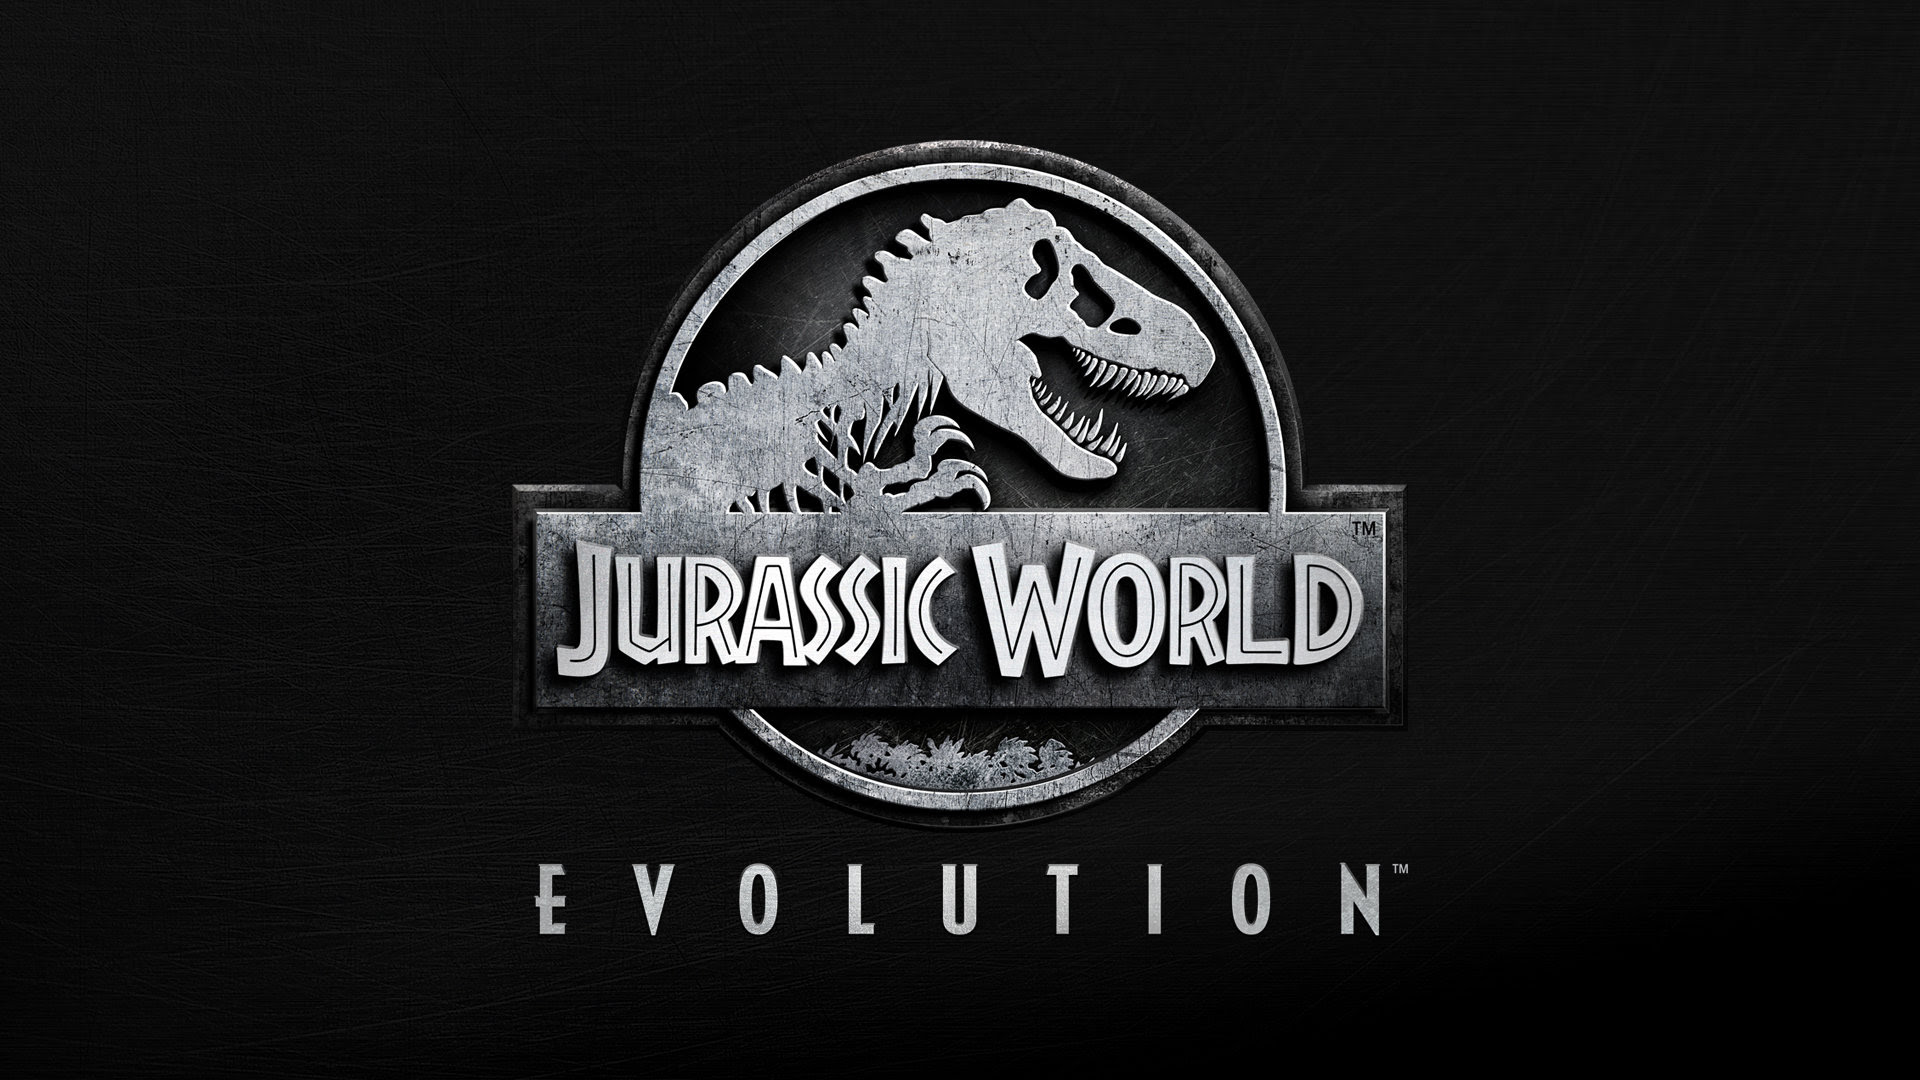 NP: La célebre actriz Bryce Dallas Howard y BD Wong se unen al elenco de actores de Jurassic World Evolution